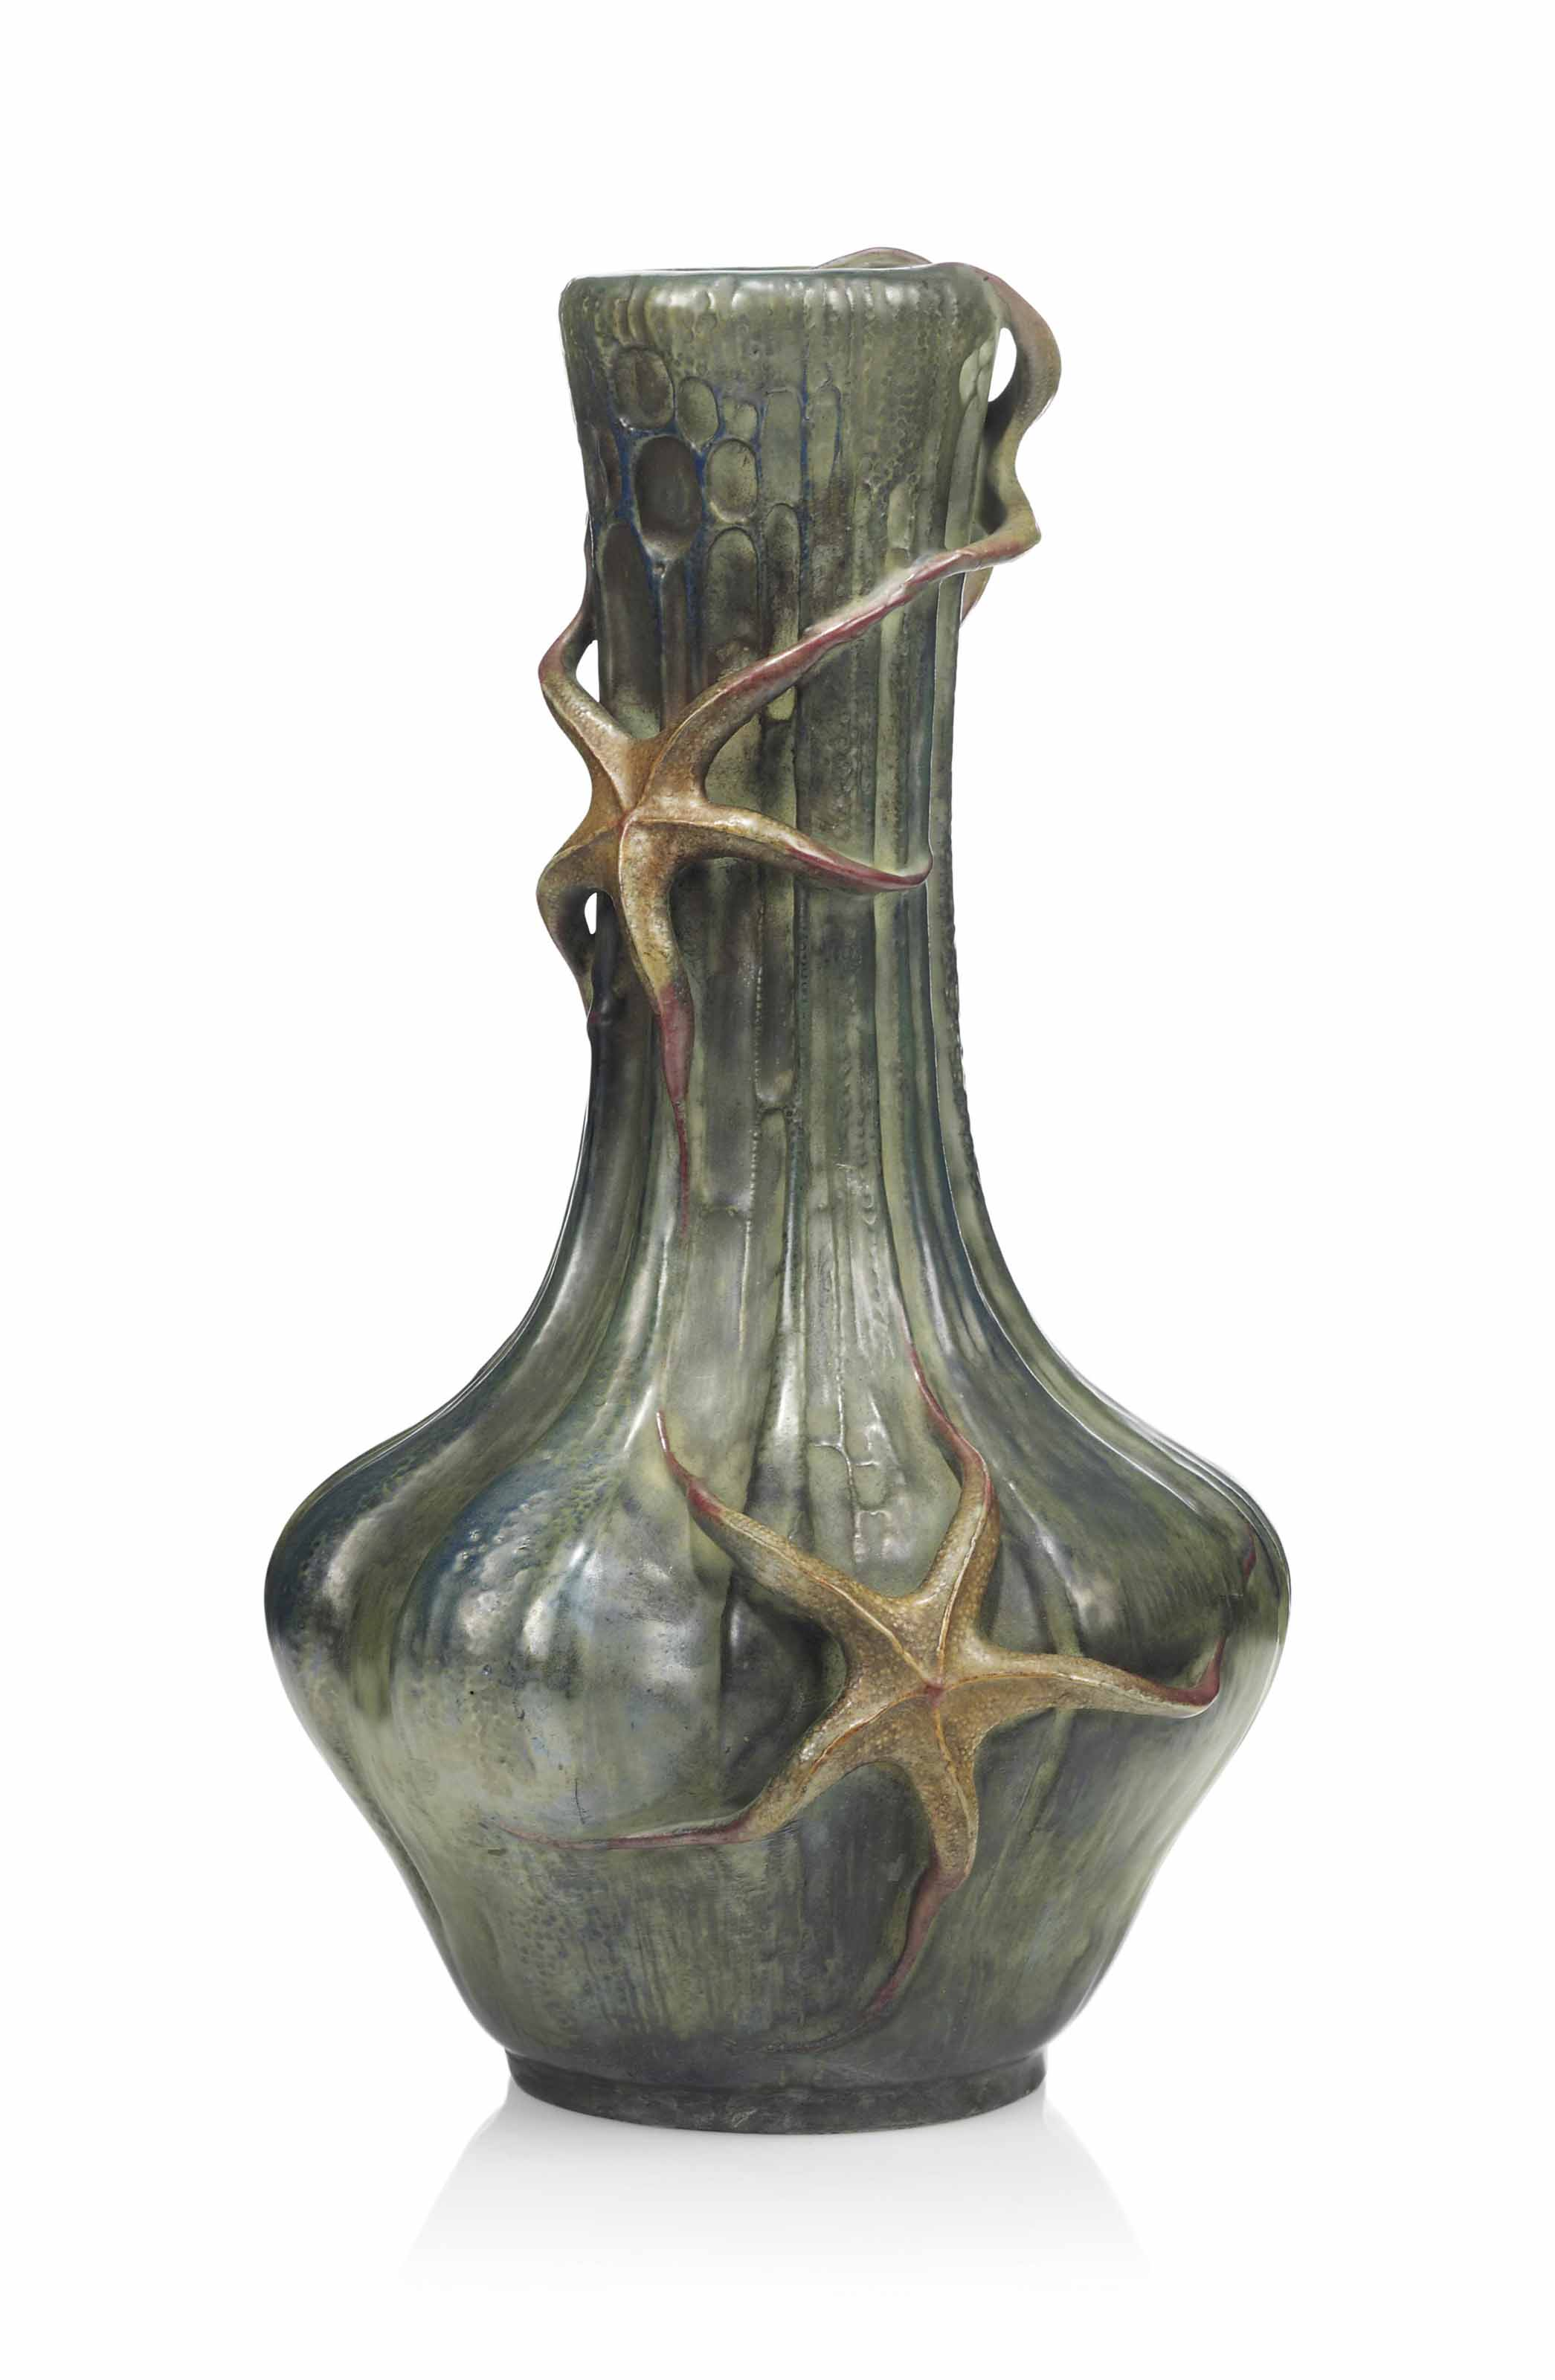 AN 'AMPHORA' EARTHENWARE 'STAR